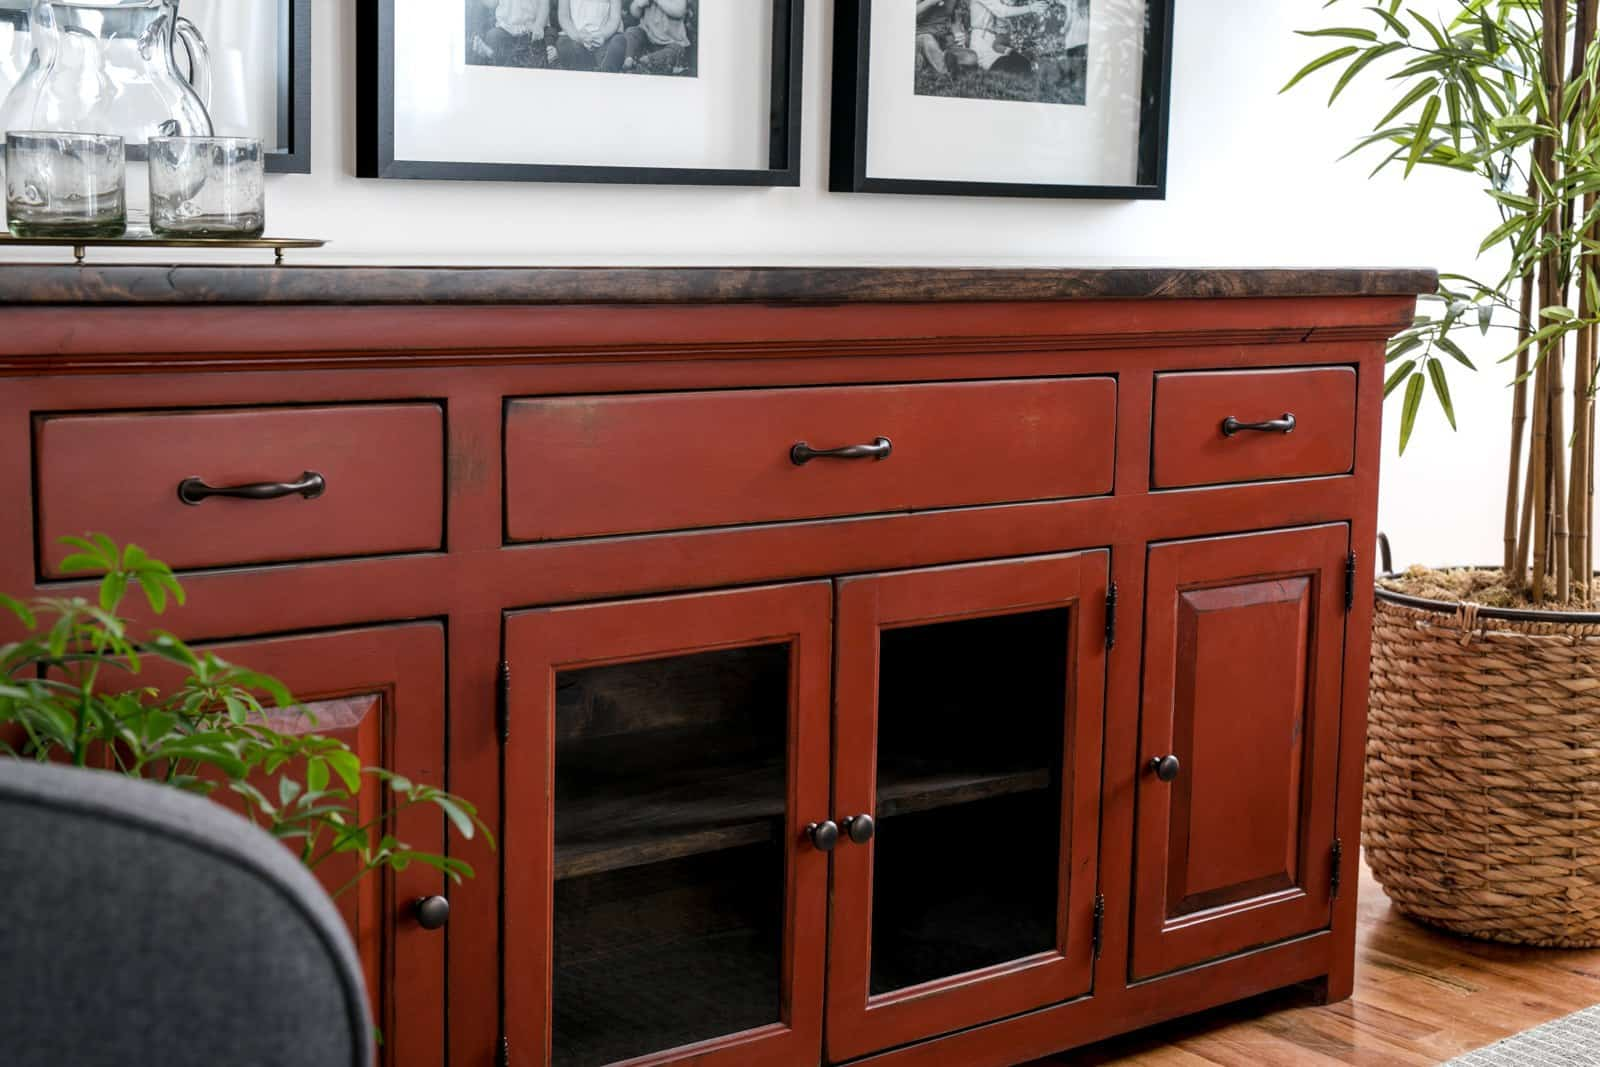 Unruh's sturdy Westport Sideboard fits in any room